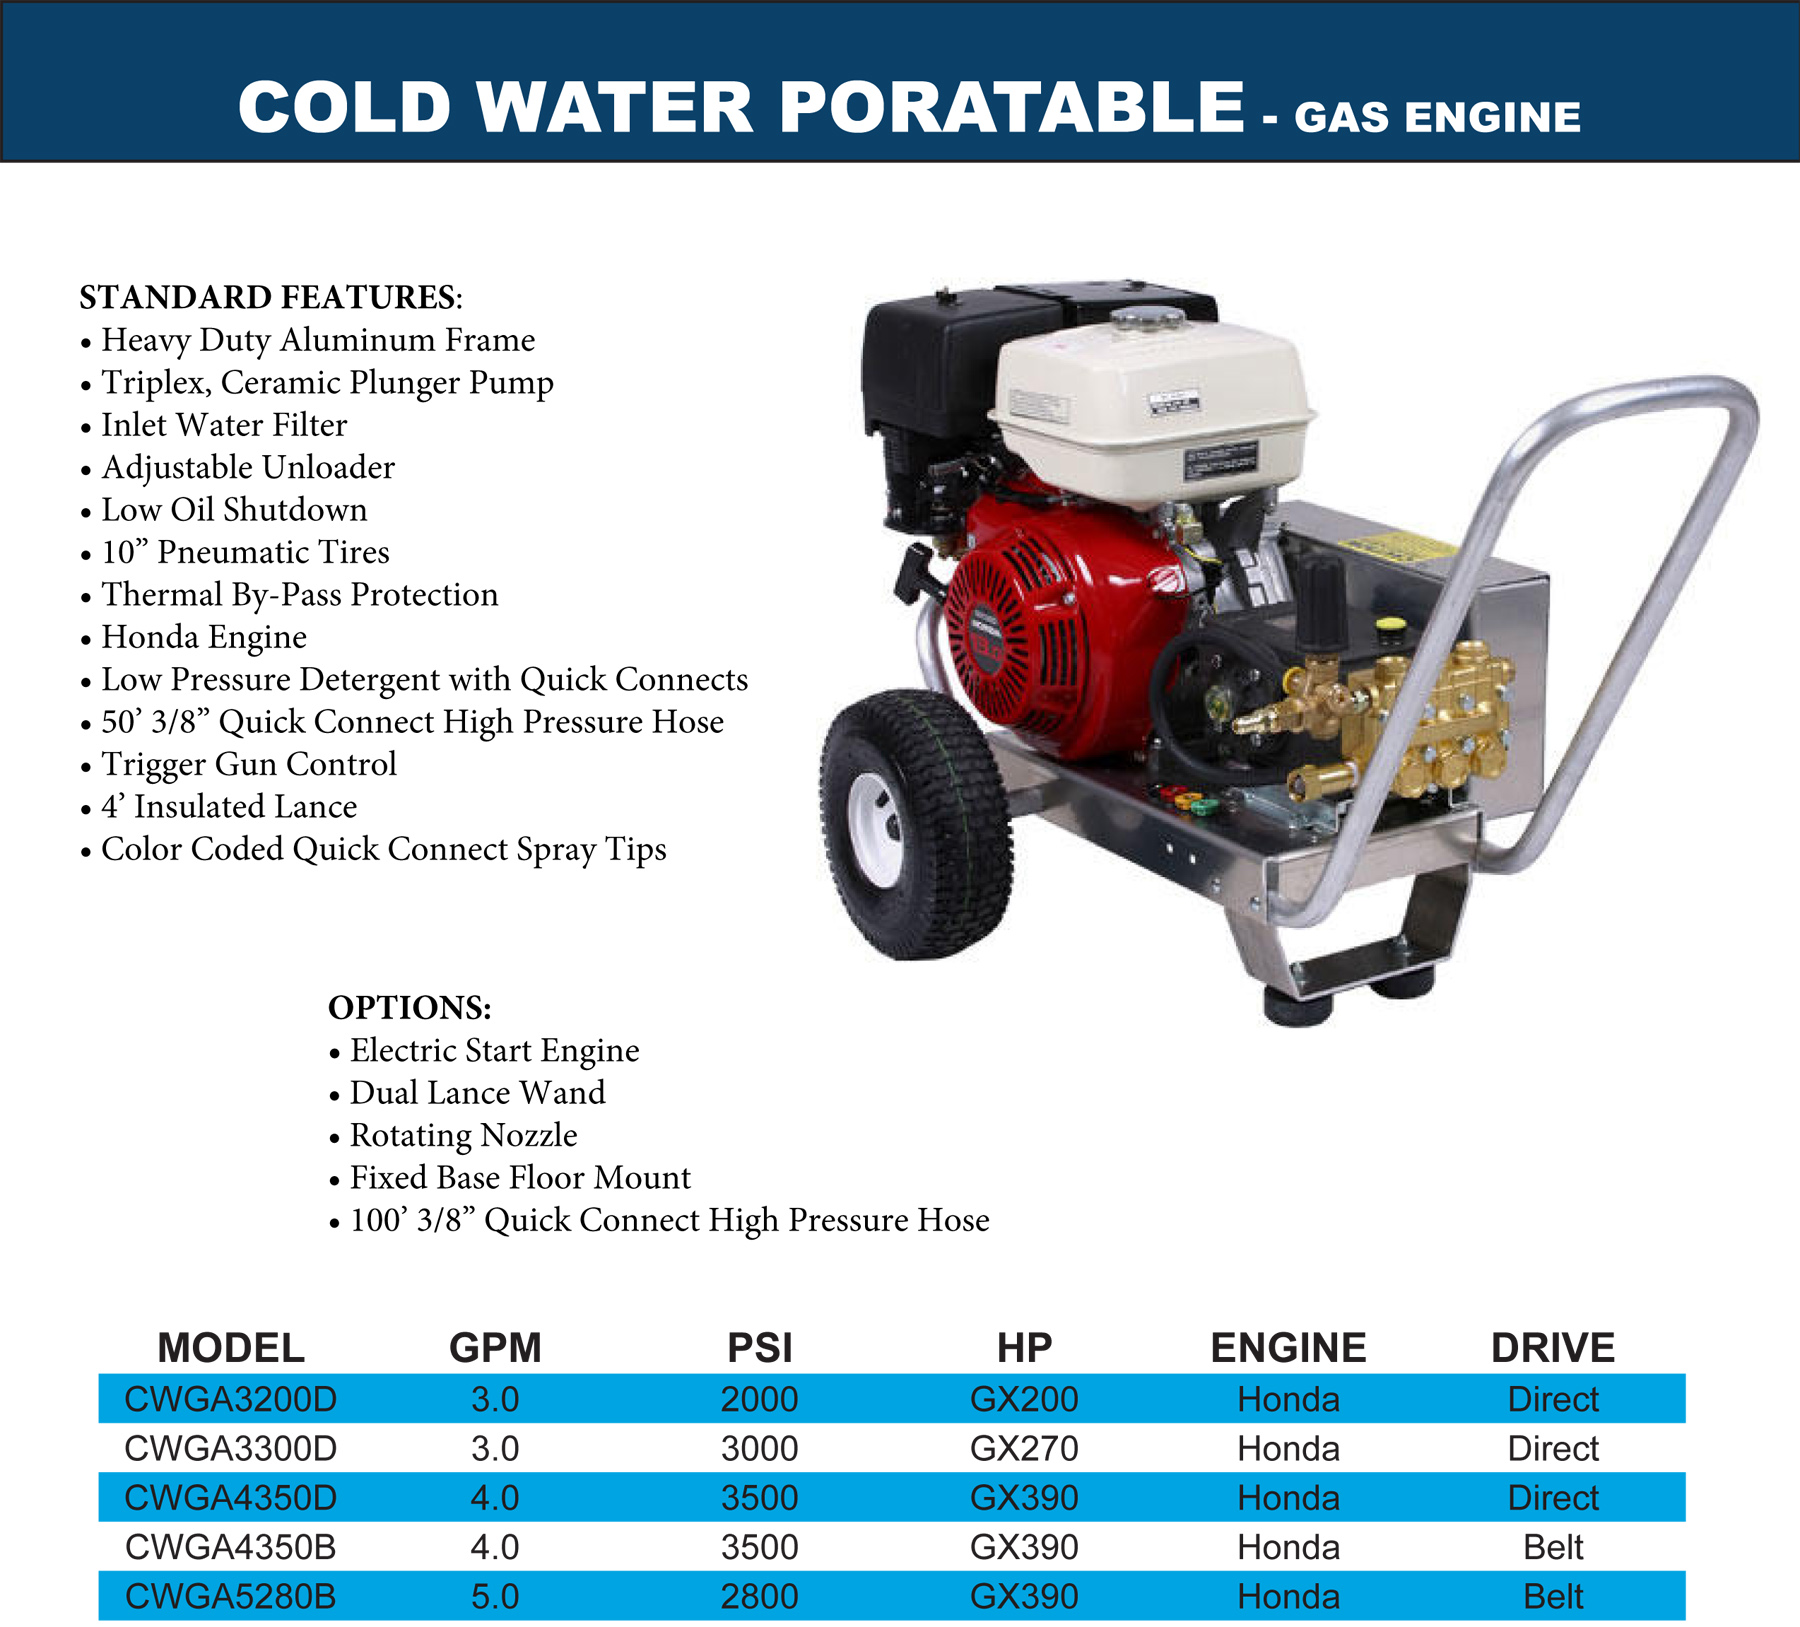 CW Portable Gas (aluminum frame).indd